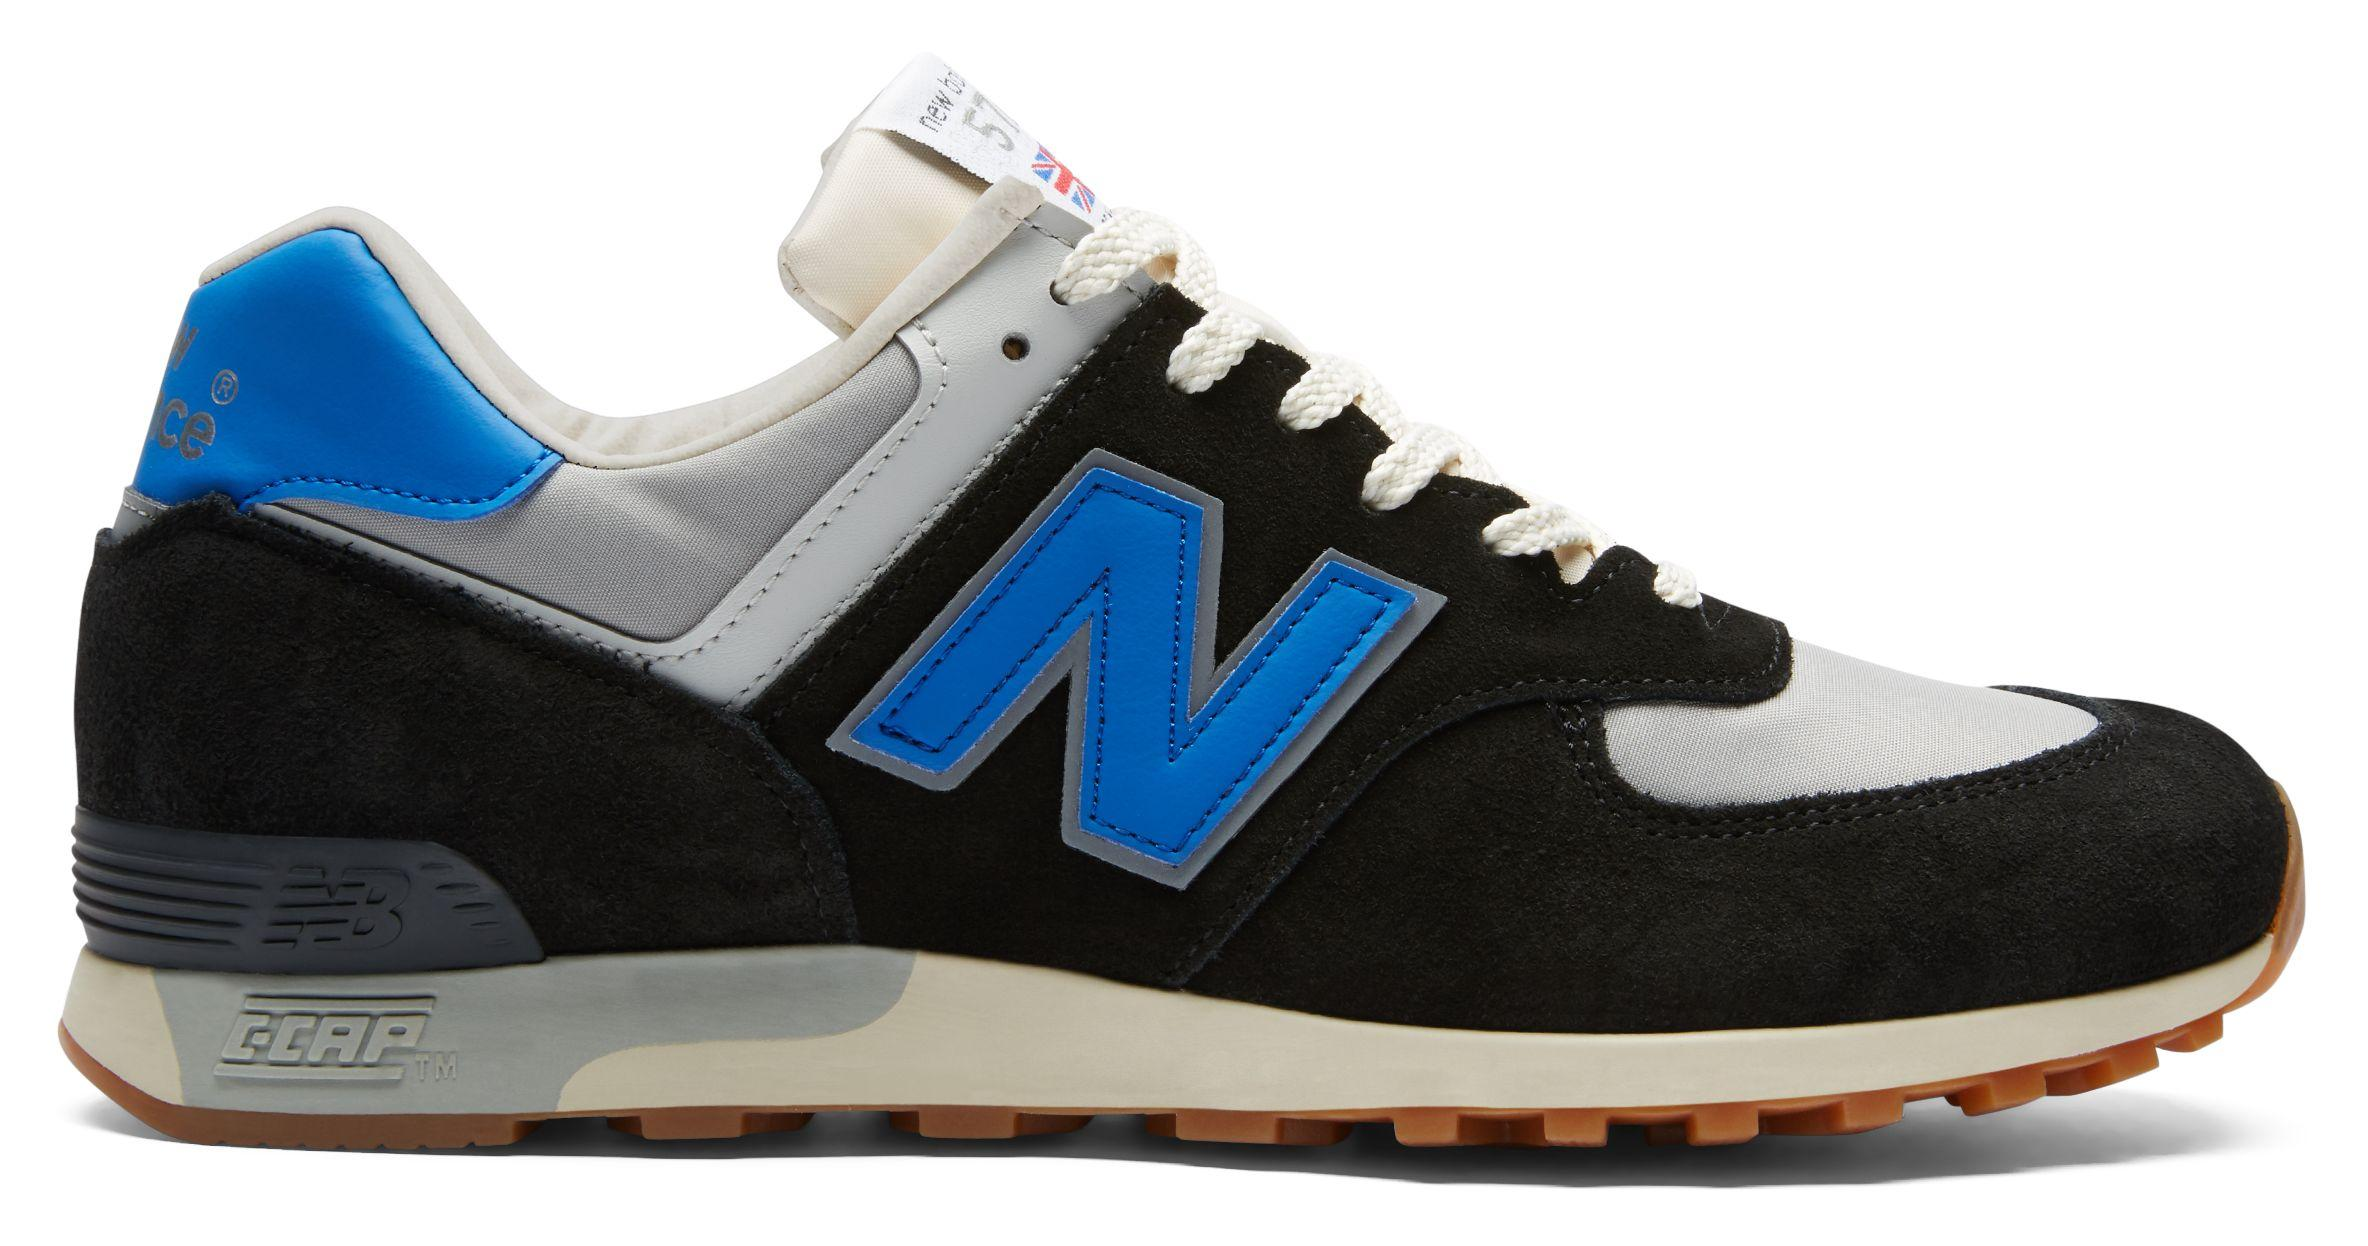 3b8cdc7e4e97a6 ... 576 Made In Uk Shoes for Men - Lyst. Visit New Balance. Tap to visit  site